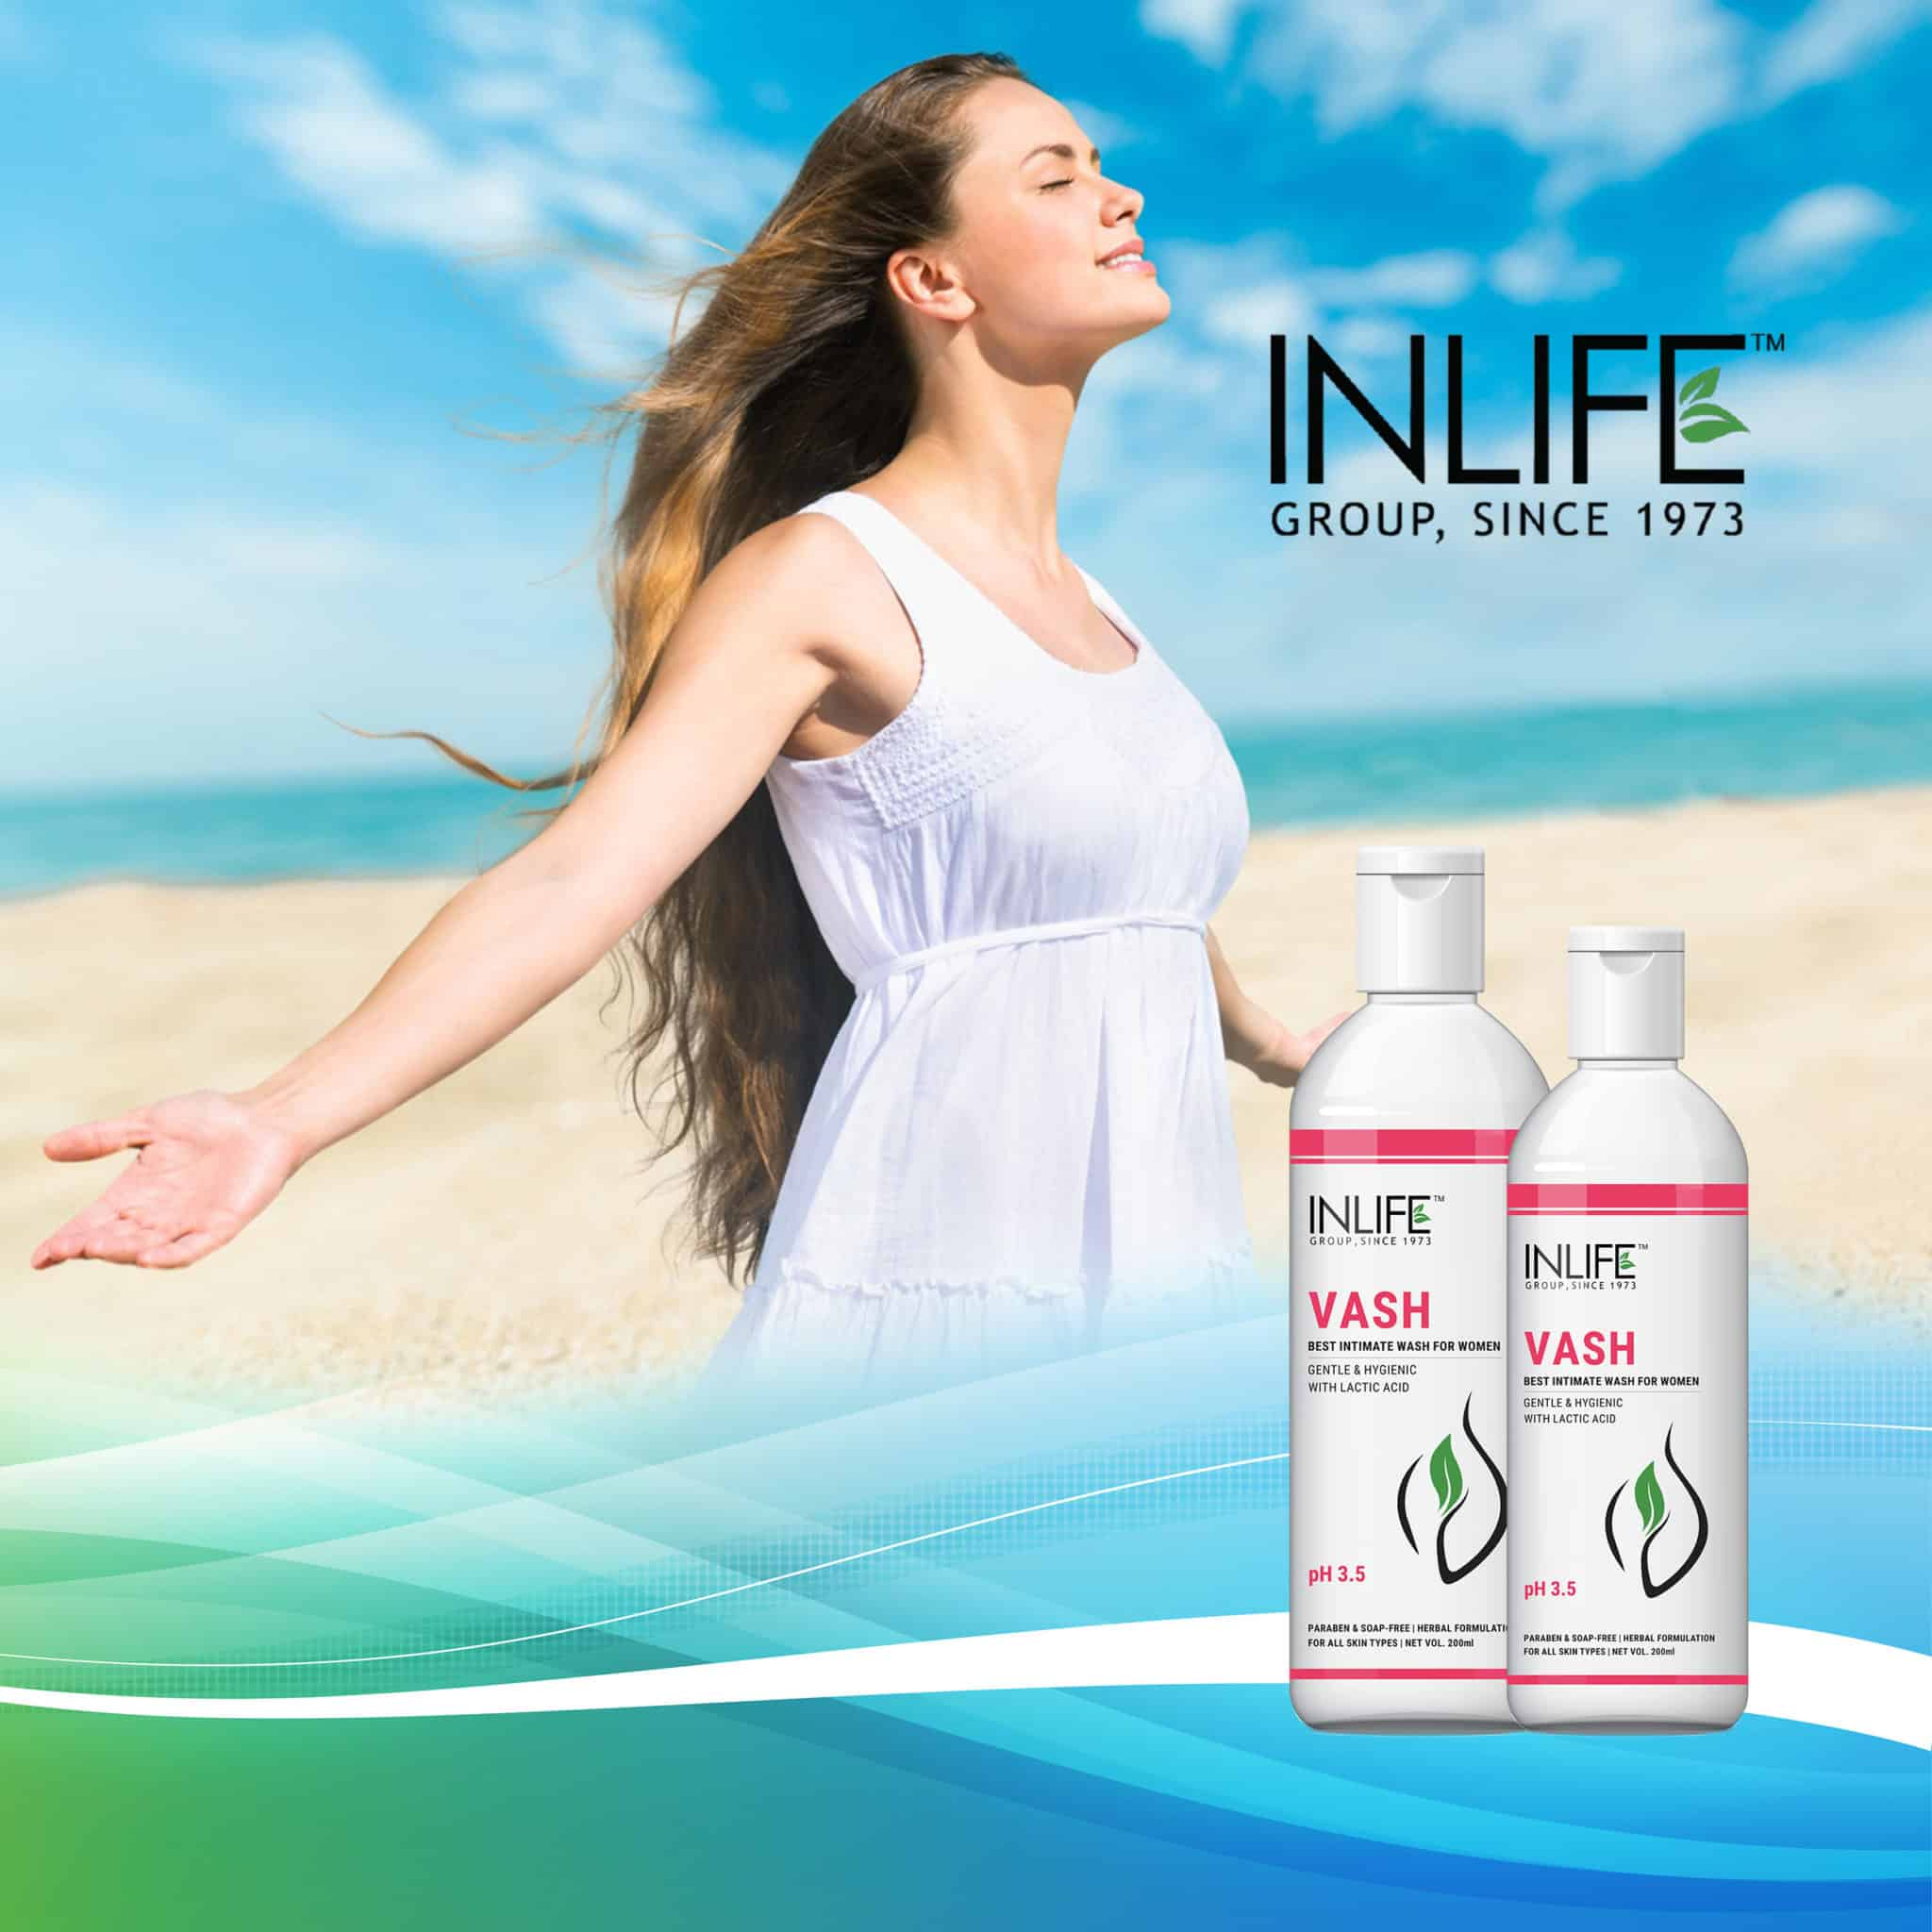 Inlife Intimate Wash